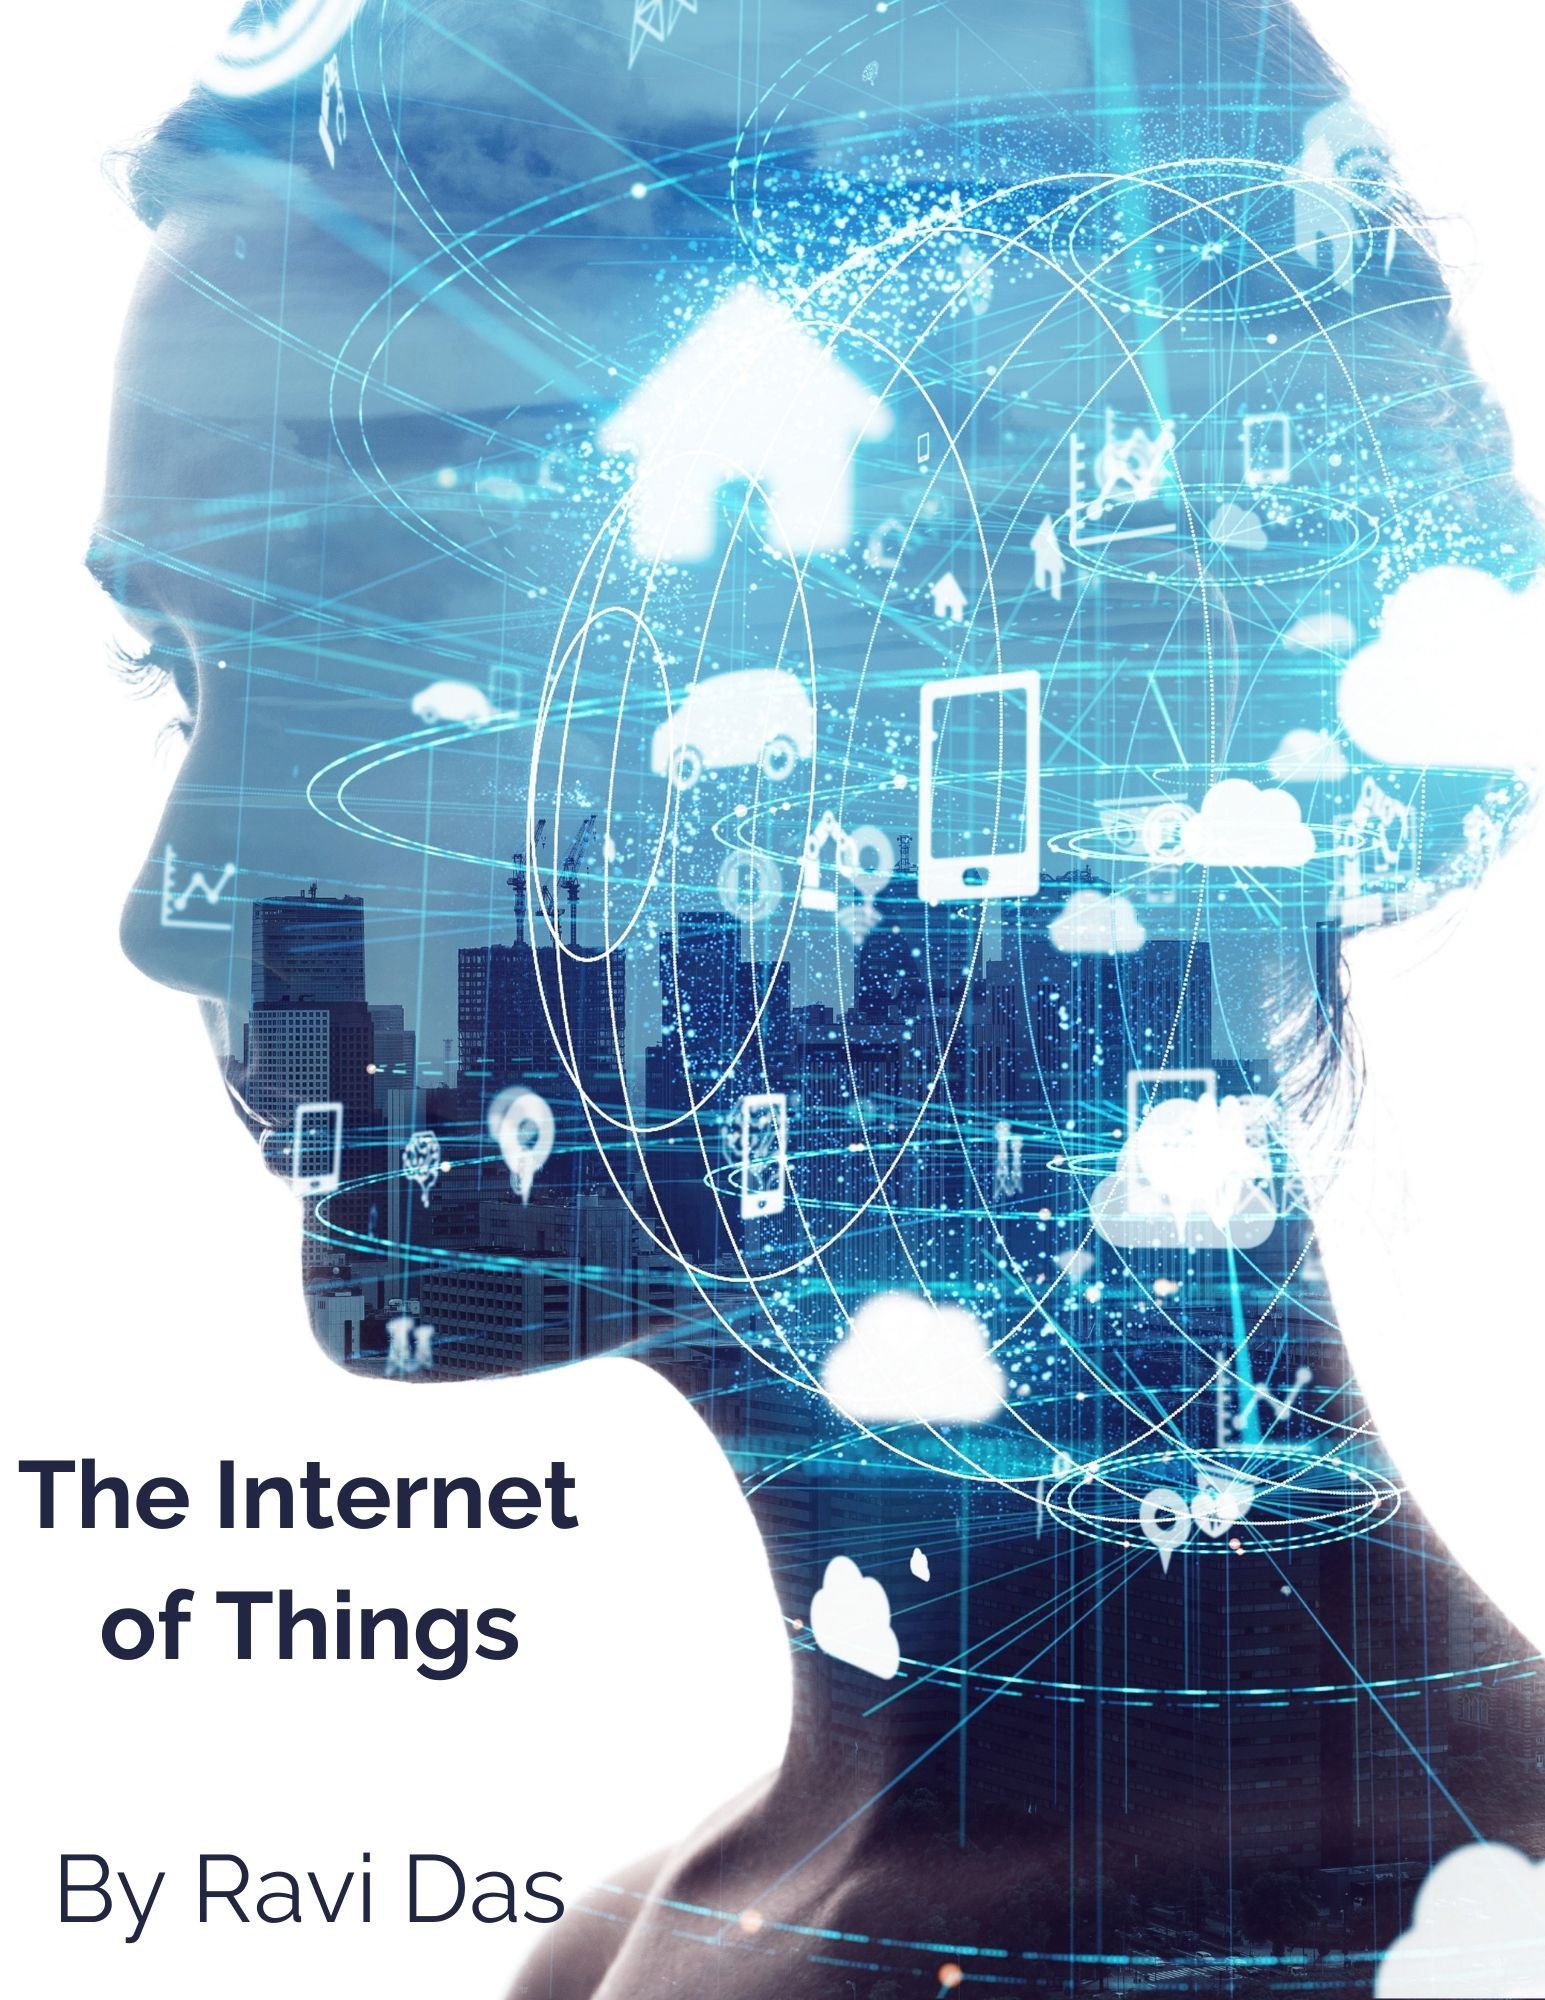 The Internet of Things: Its Past, Present, & Future